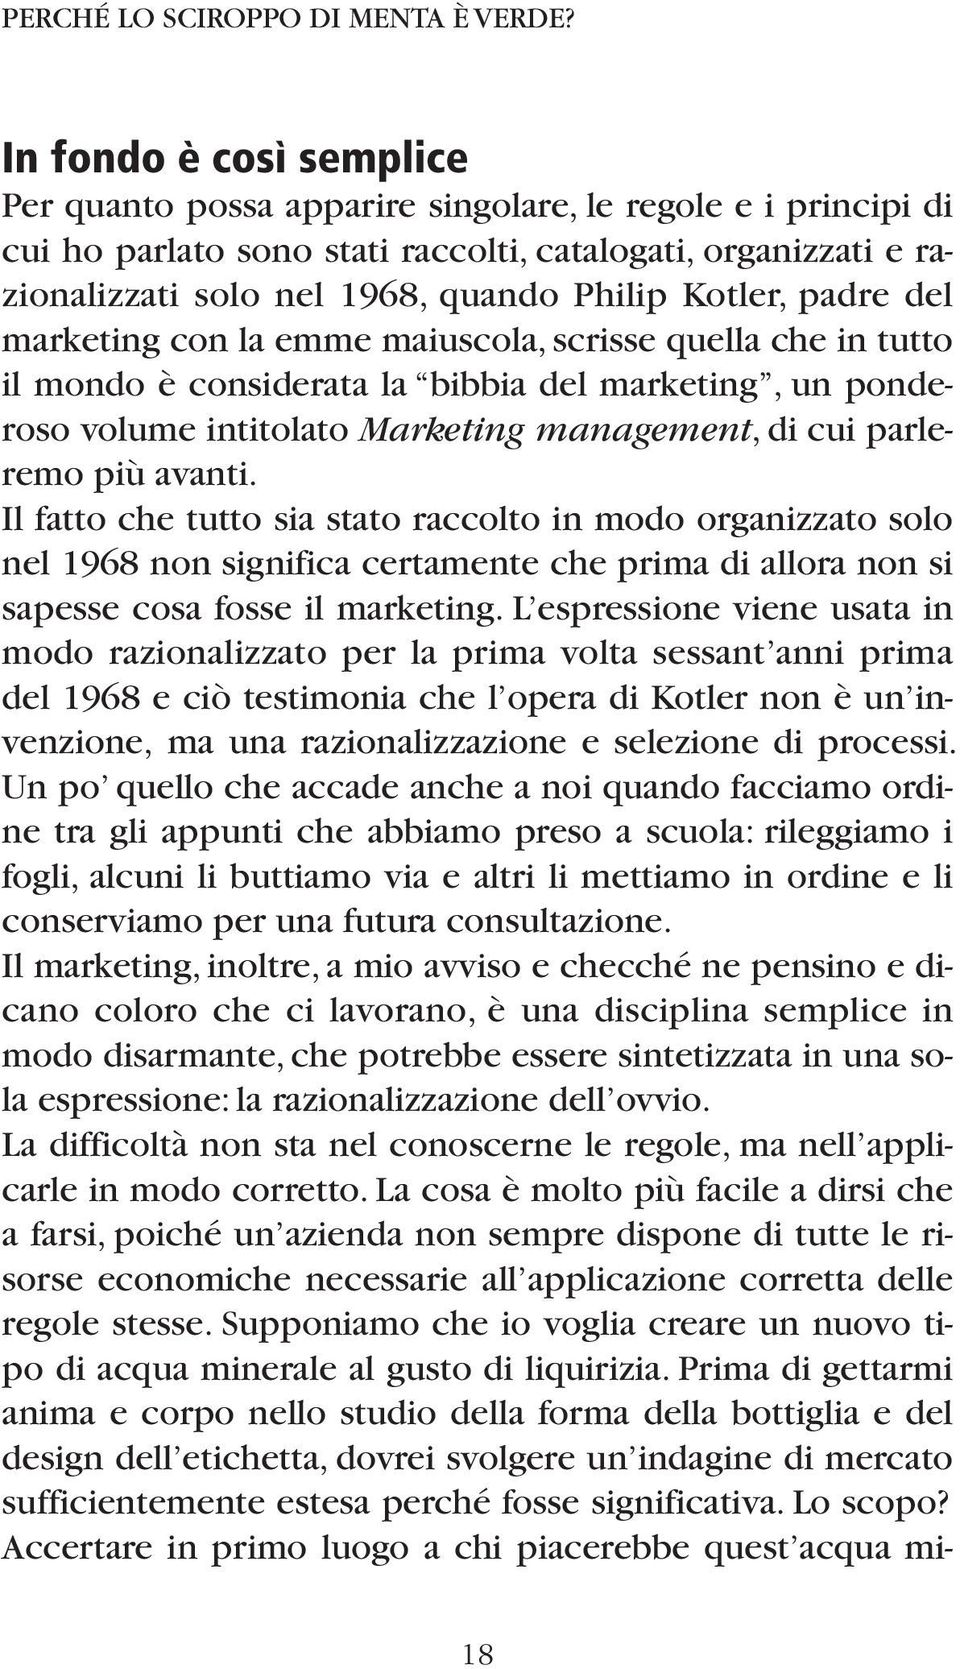 Kotler, padre del marketing con la emme maiuscola, scrisse quella che in tutto il mondo è considerata la bibbia del marketing, un ponderoso volume intitolato Marketing management, di cui parleremo